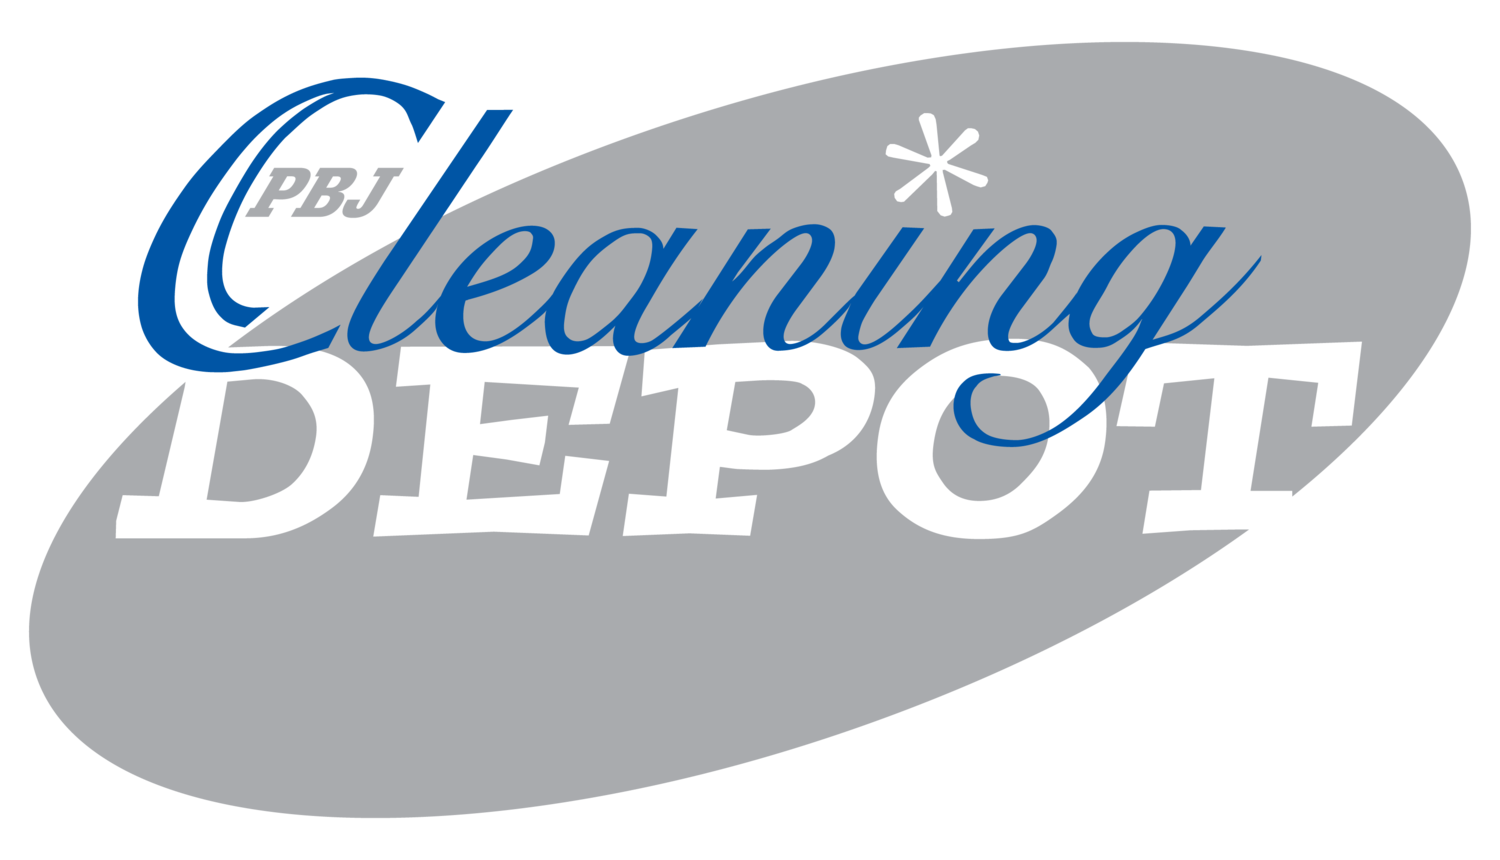 PBJ Cleaning Depot logo